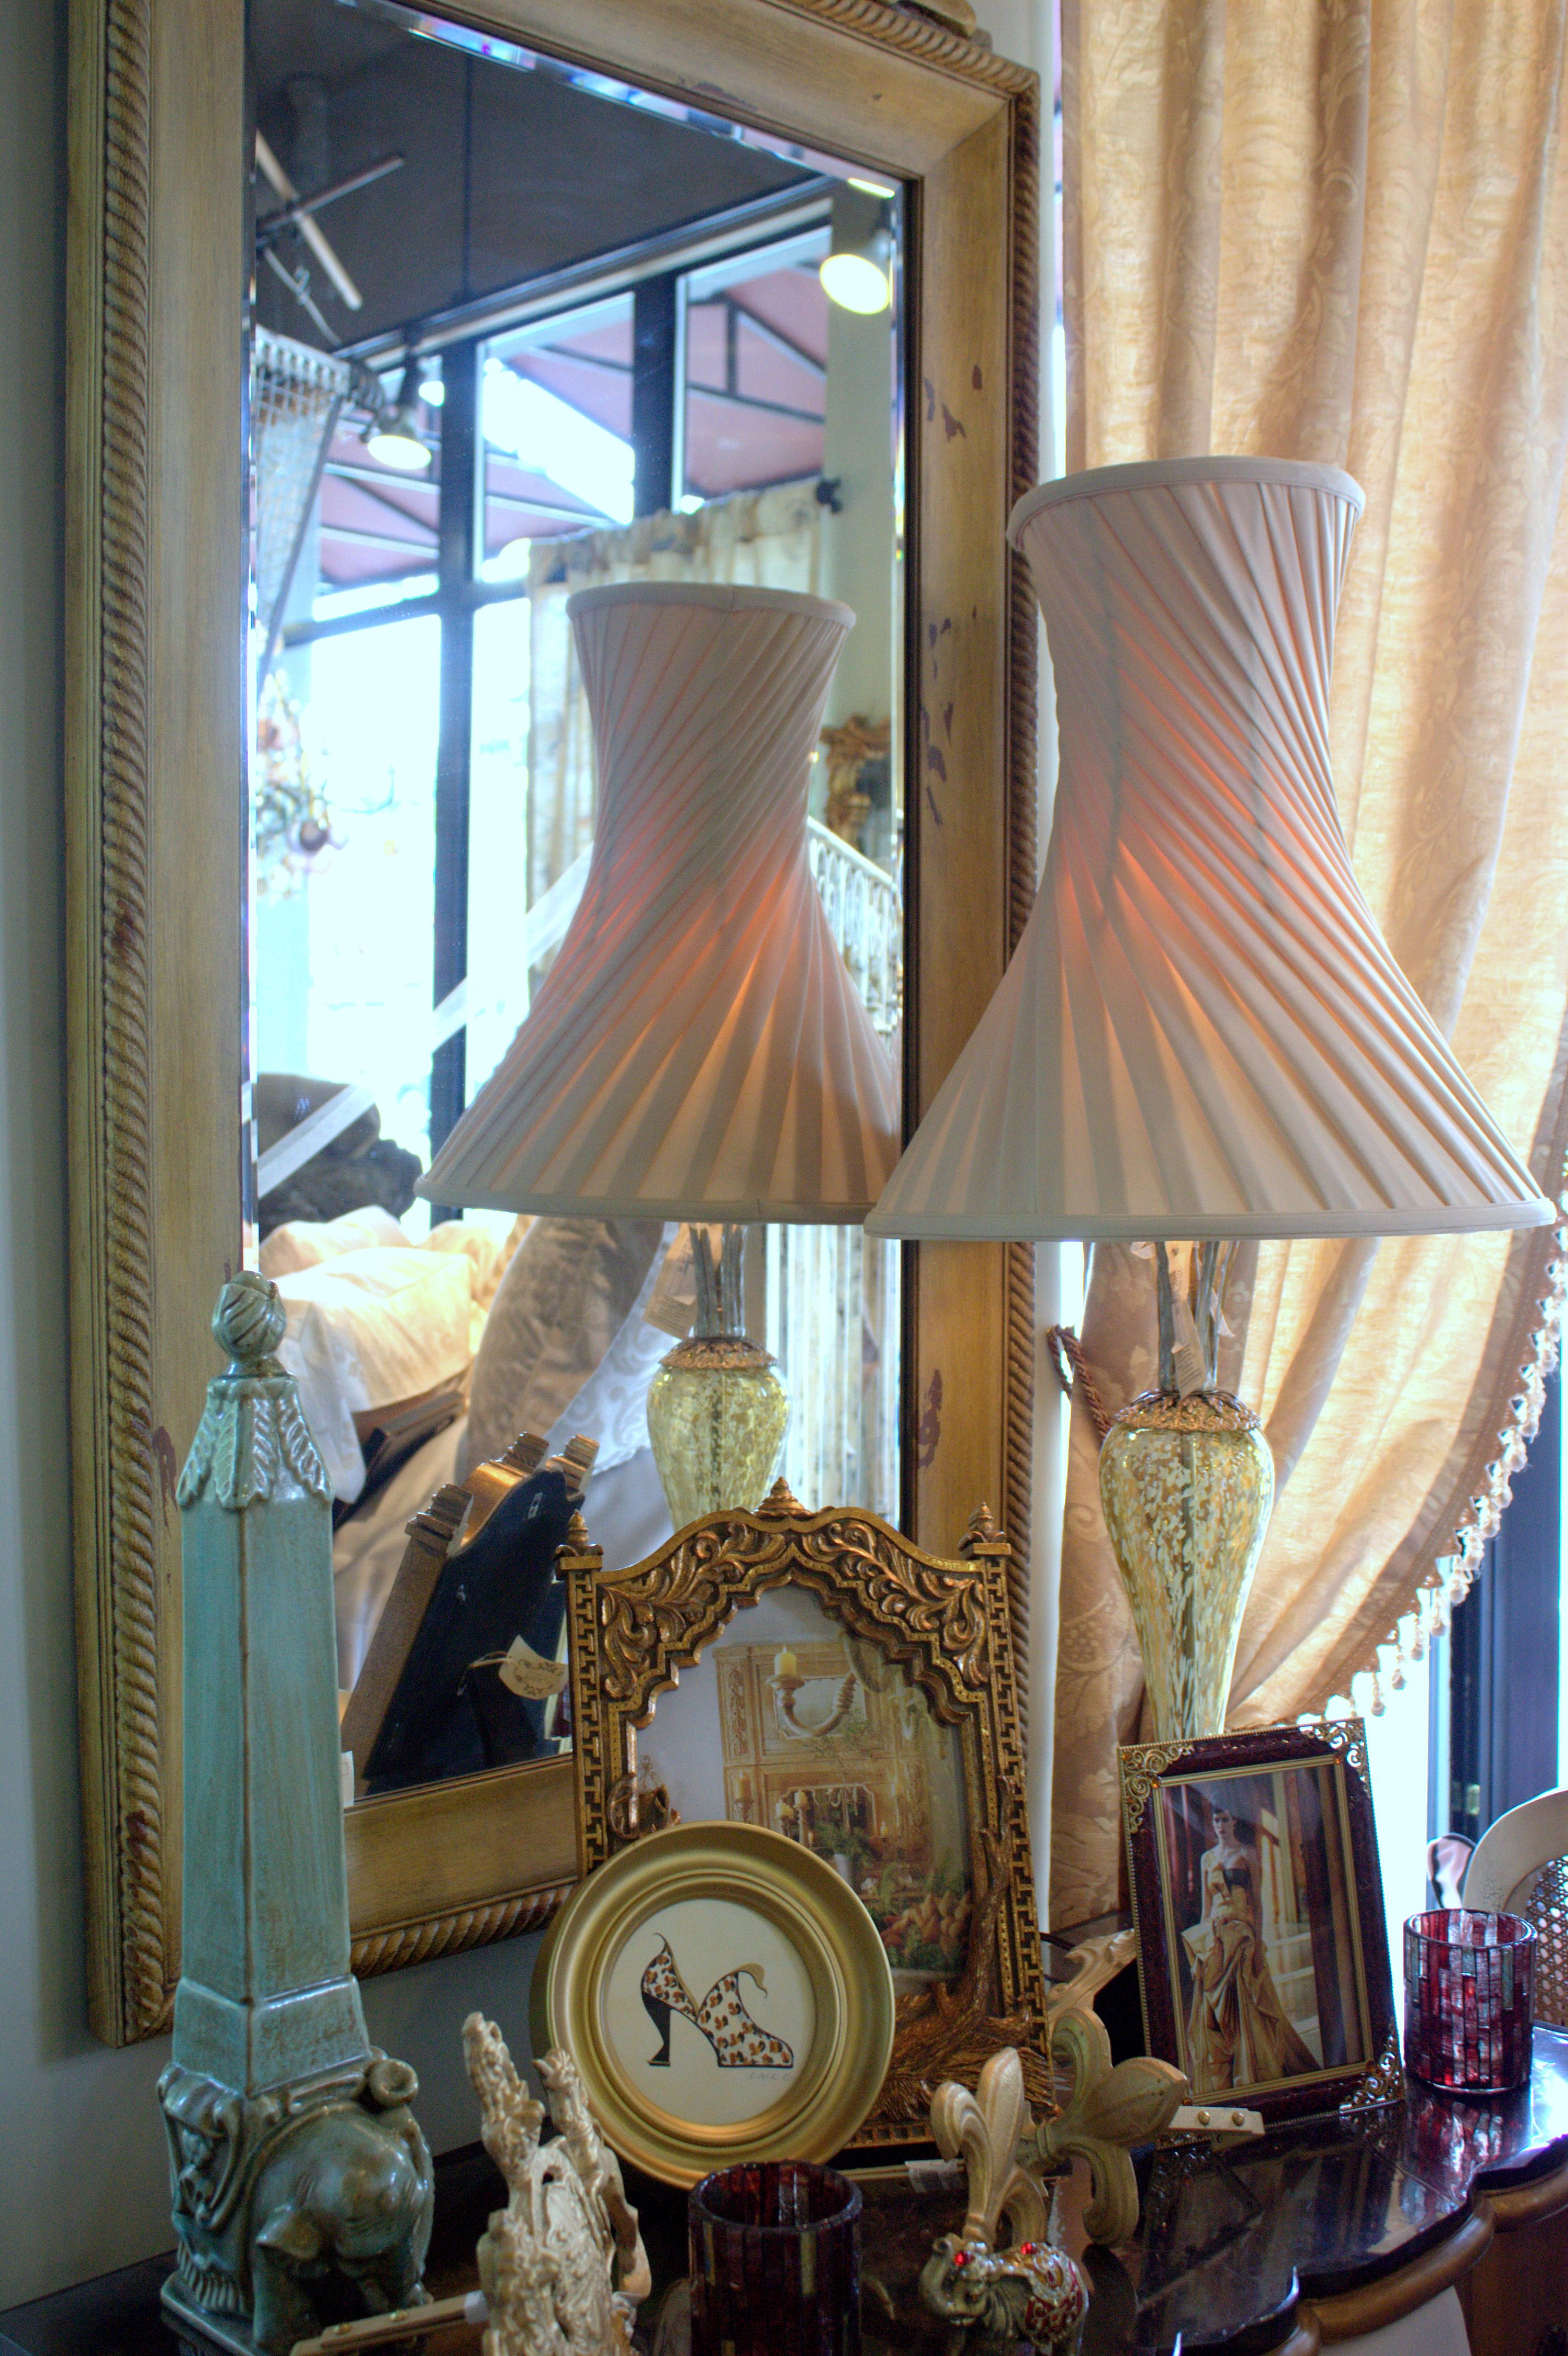 Romantic style decorative accessories and lighting fixture ...